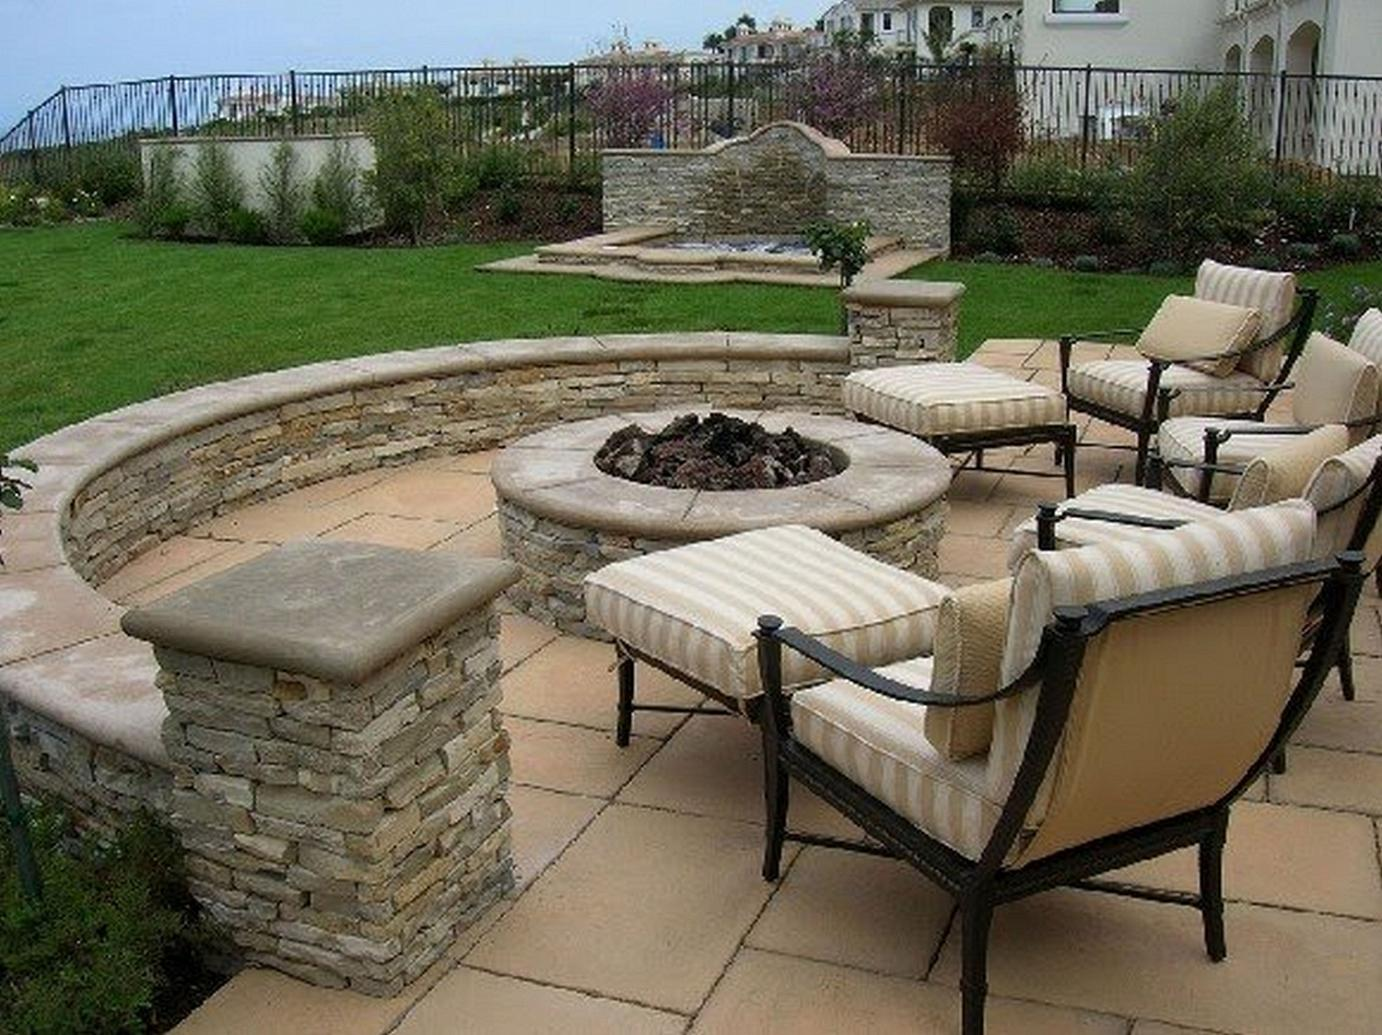 Backyard ideas budget large and beautiful photos photo for Backyard remodel ideas on a budget